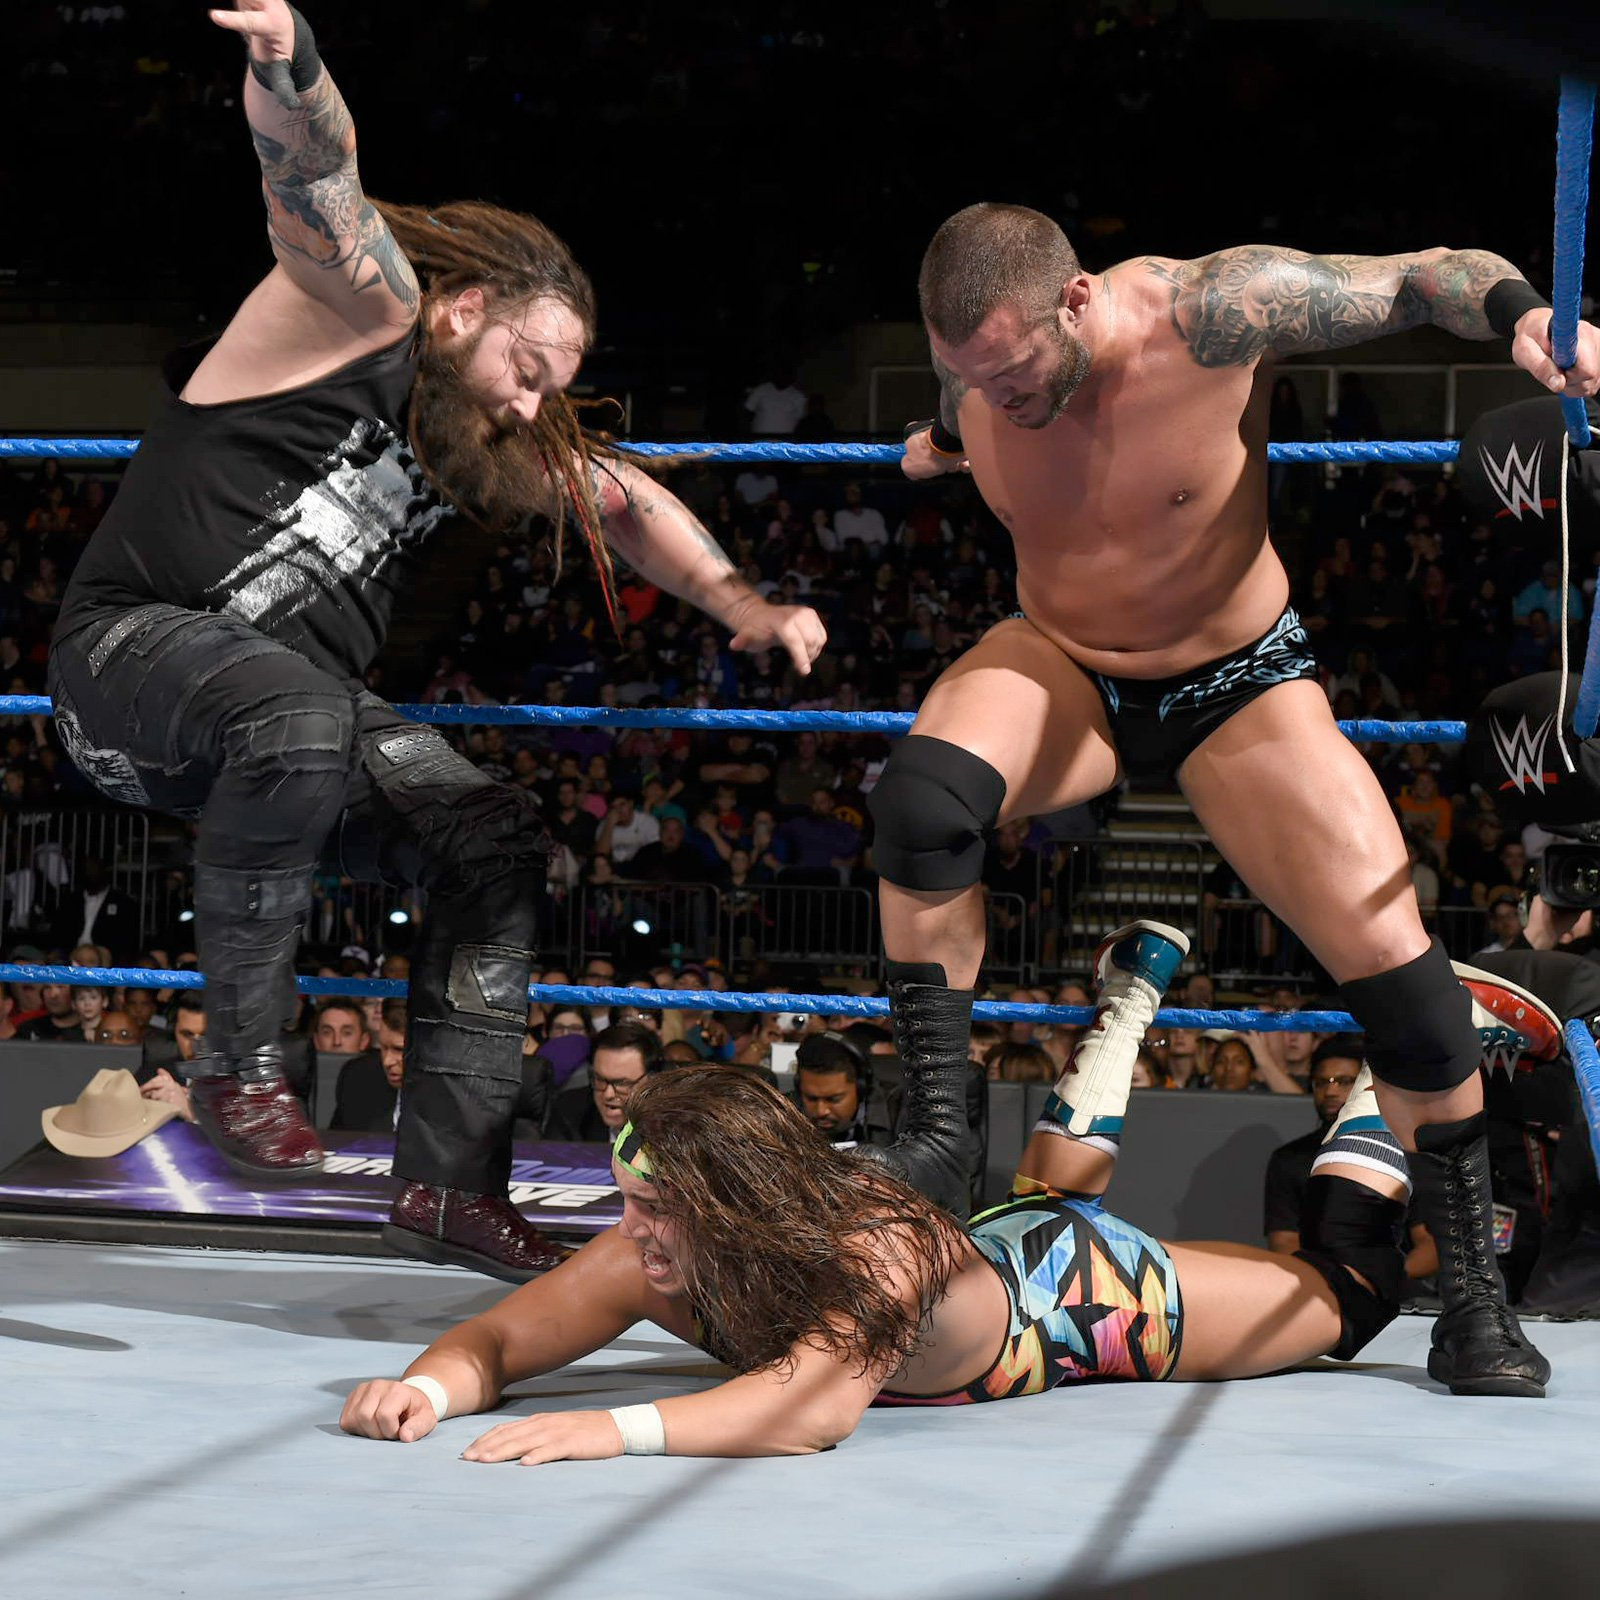 Wyatt and Randy Orton double team the former Olympian.